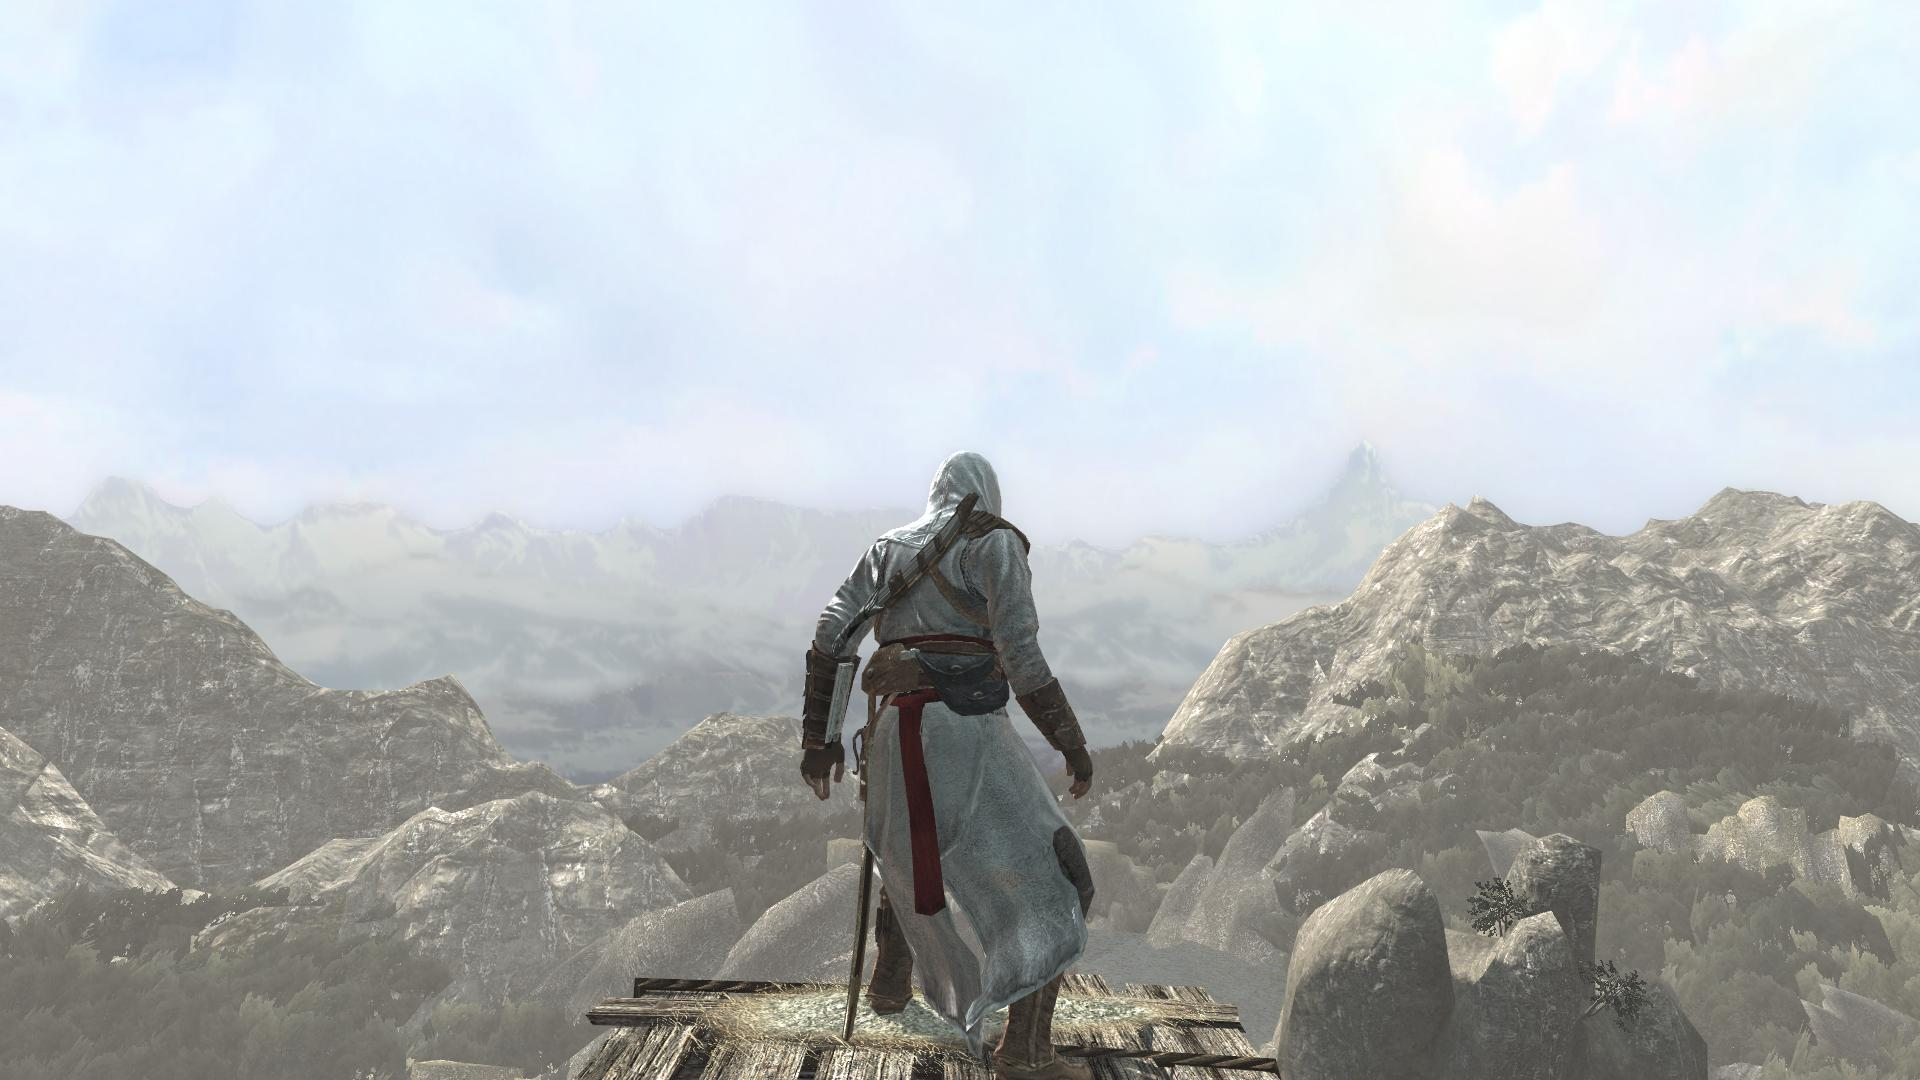 Afbeeldingsresultaat voor assassins creed mountain